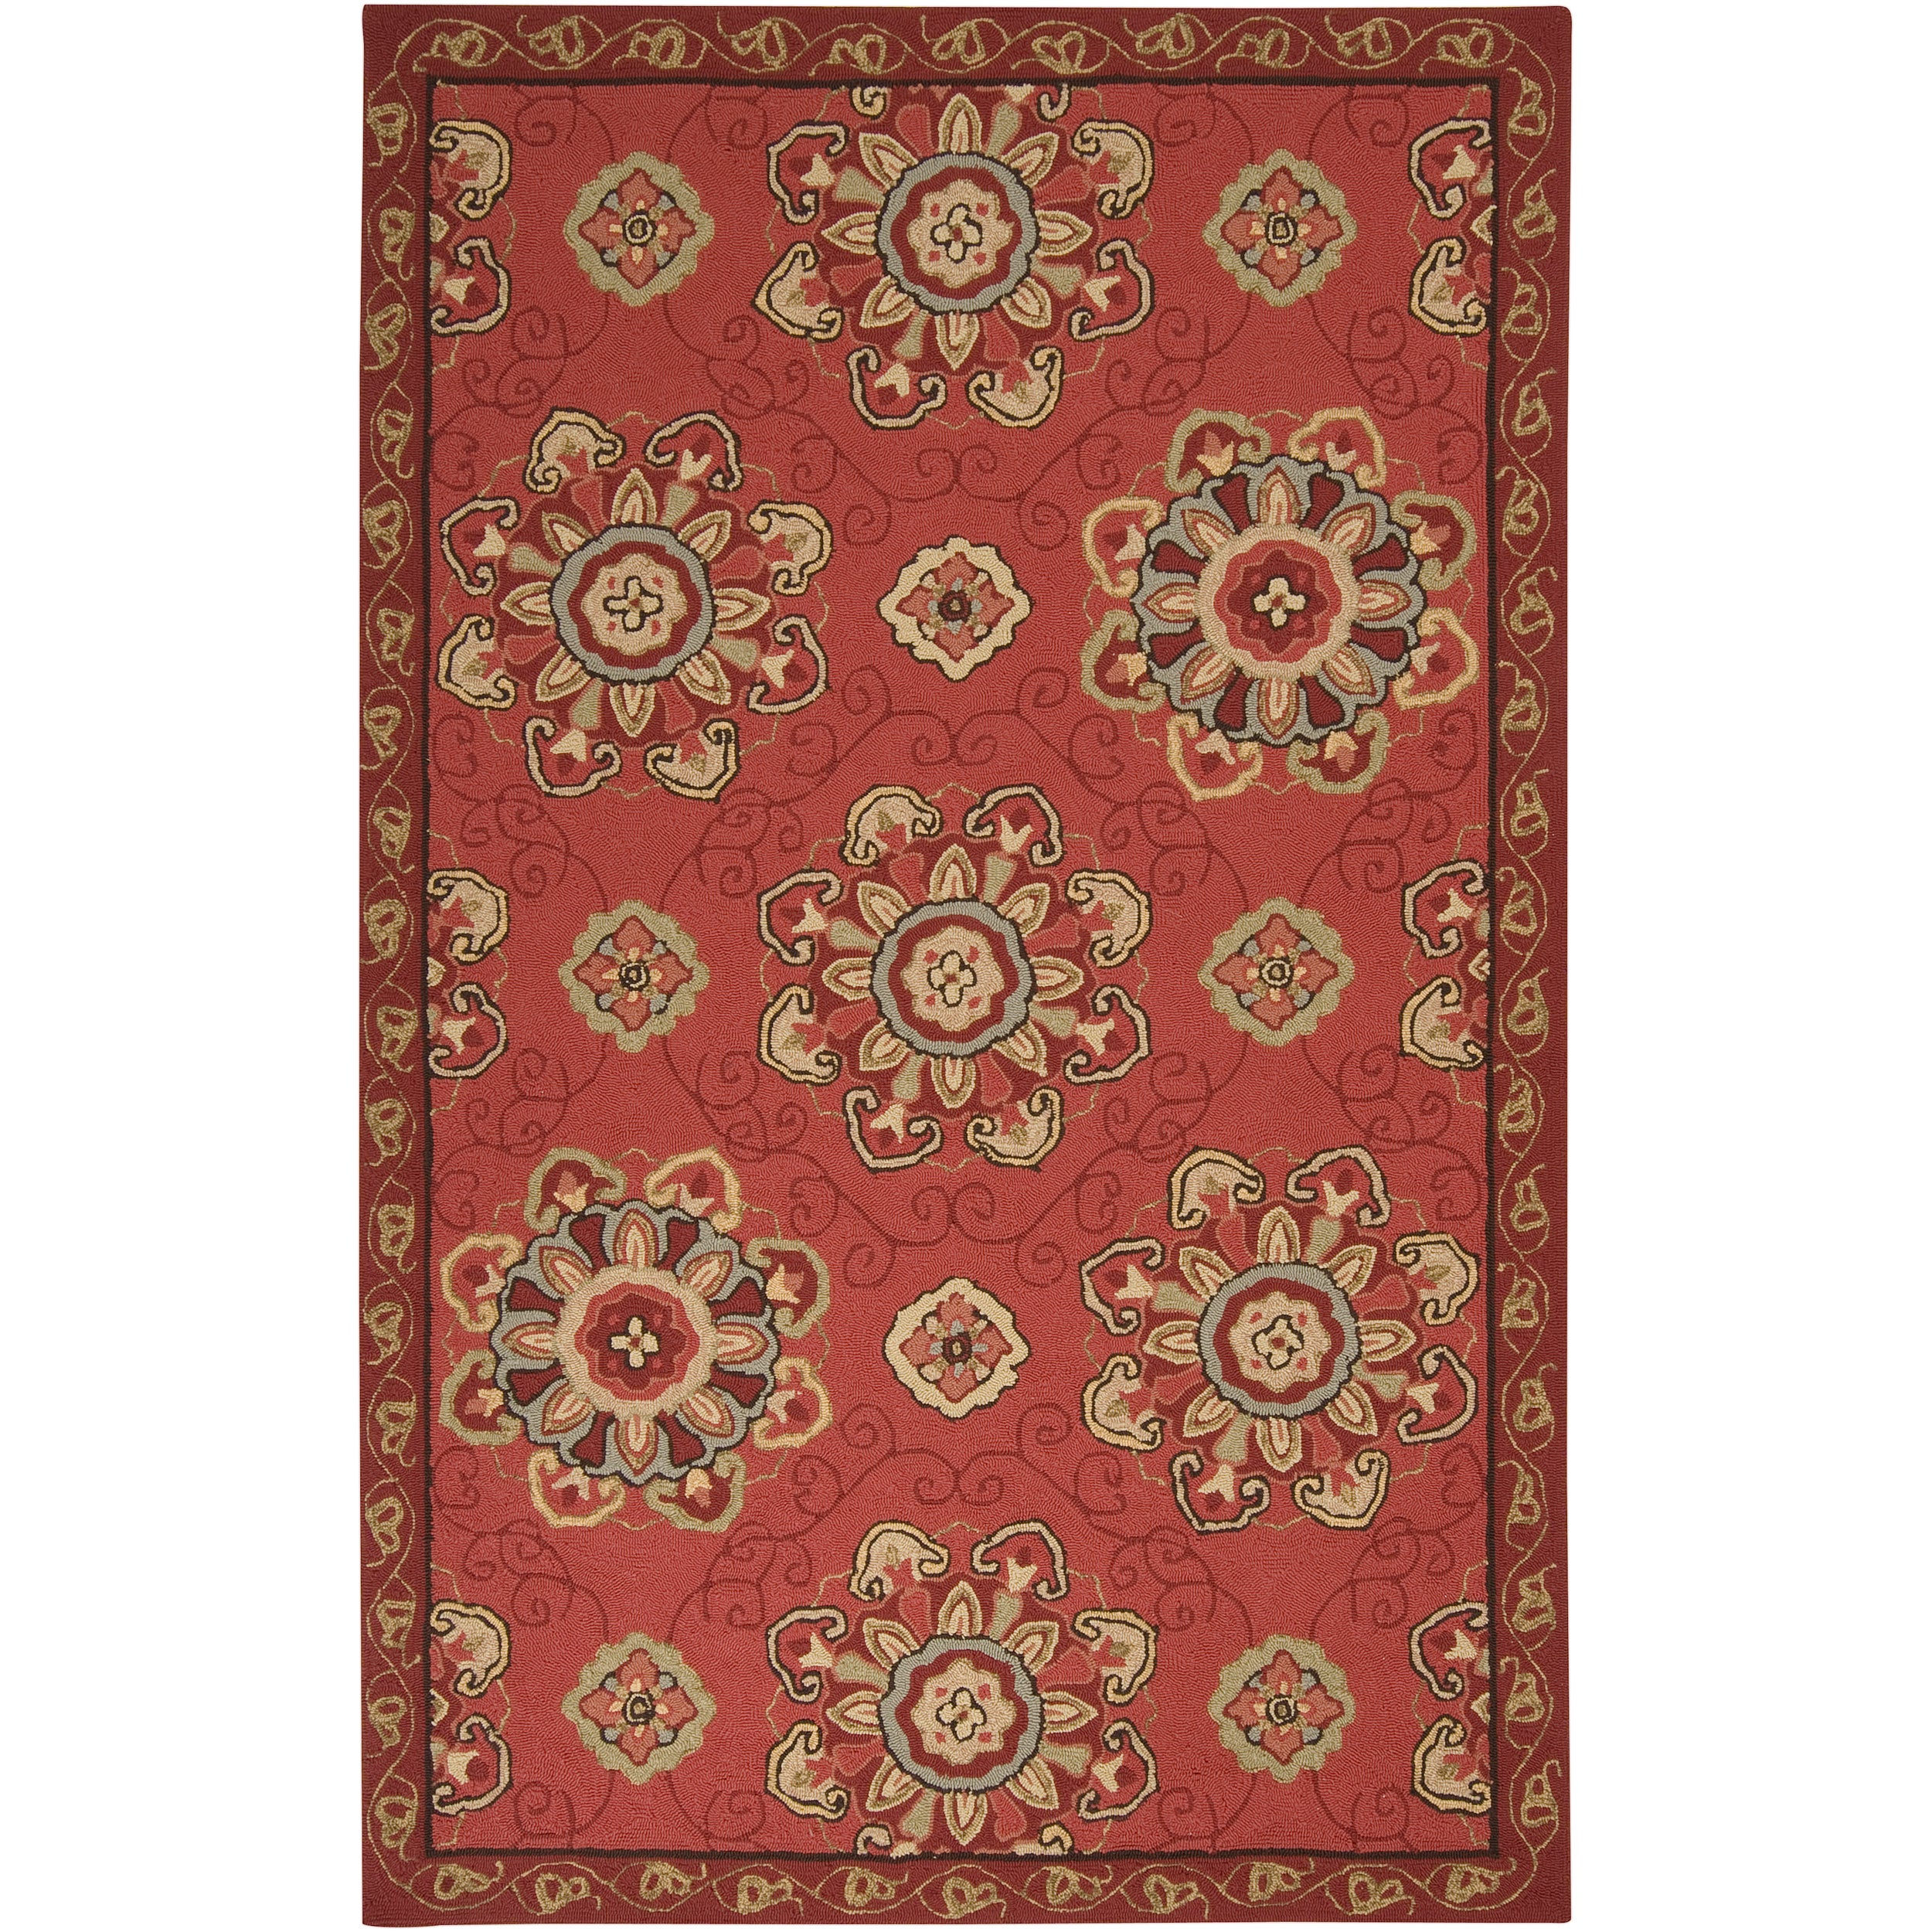 Hand-hooked Burgundy Labradore Indoor/Outdoor Medallion Rug (8' x 10') - Thumbnail 0